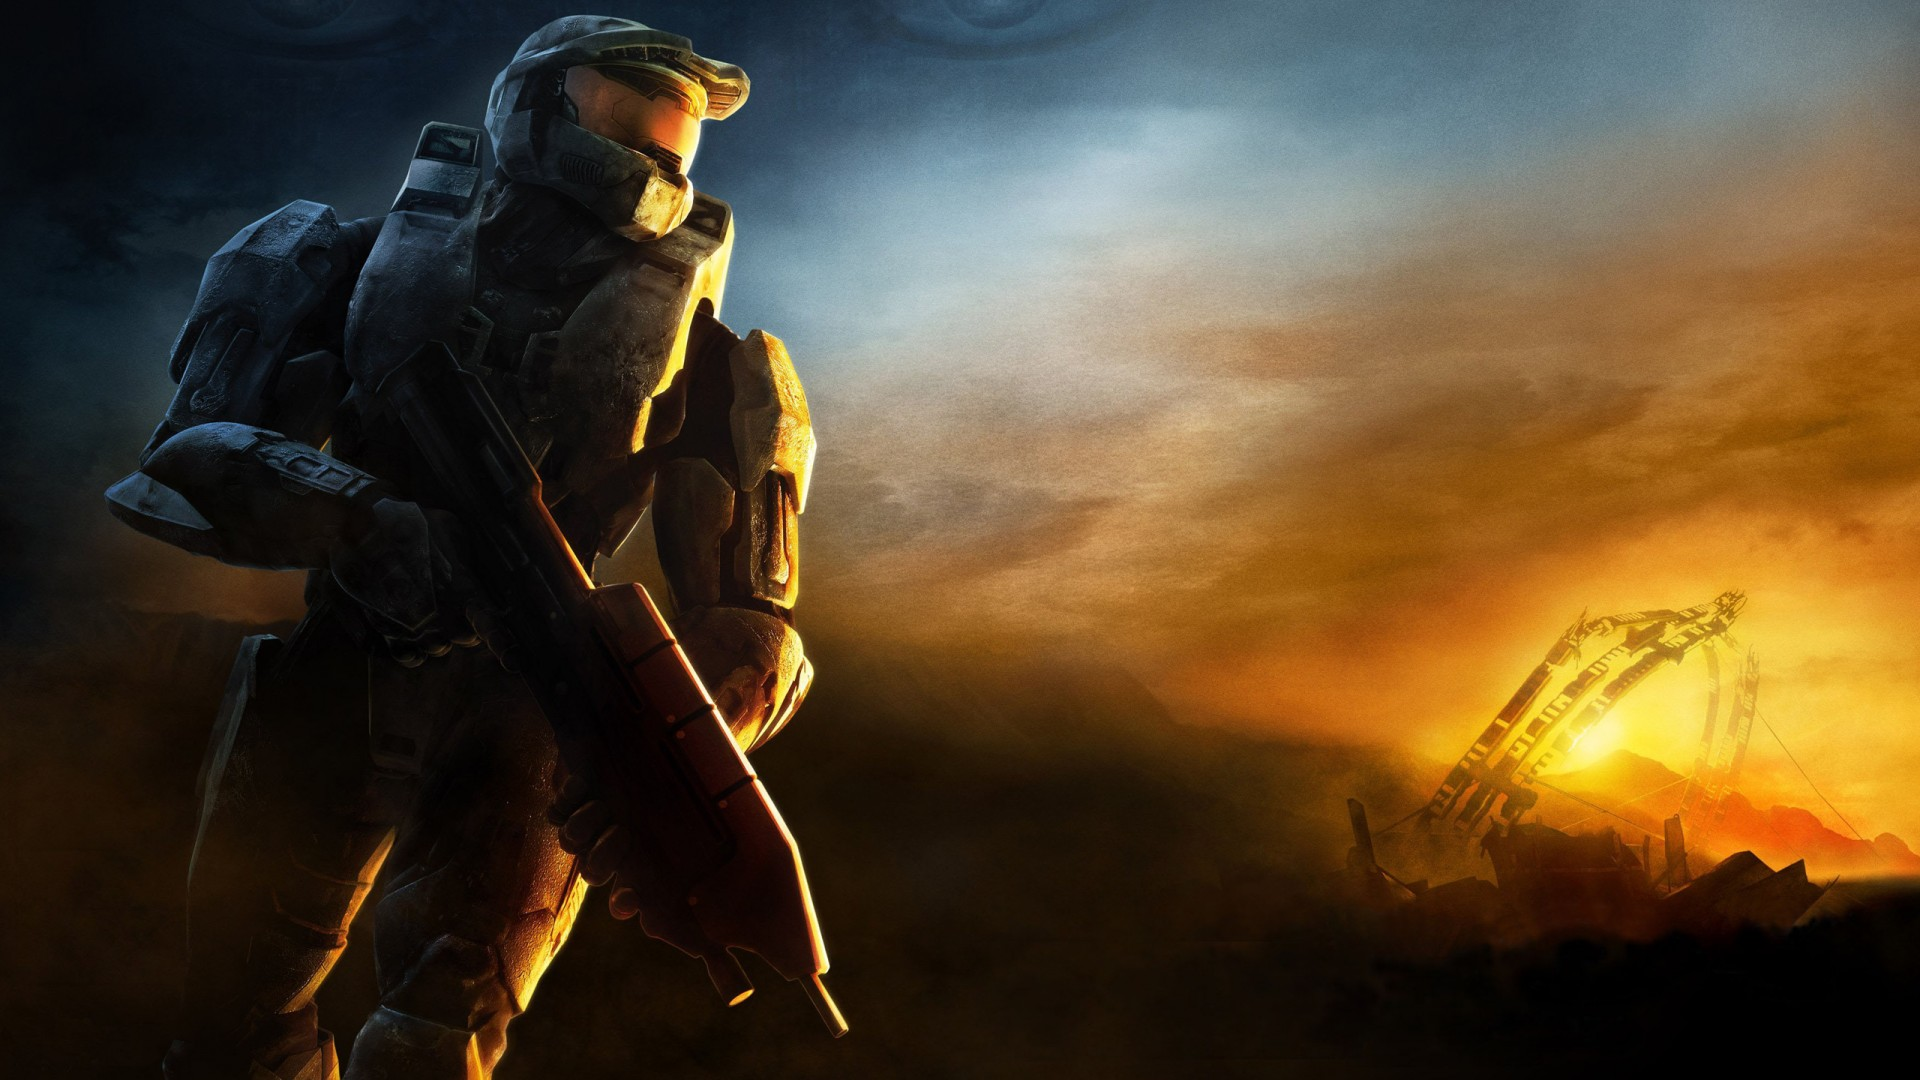 3d Android Wallpaper For Tablets Halo 3 Game Wallpapers Hd Wallpapers Id 9963